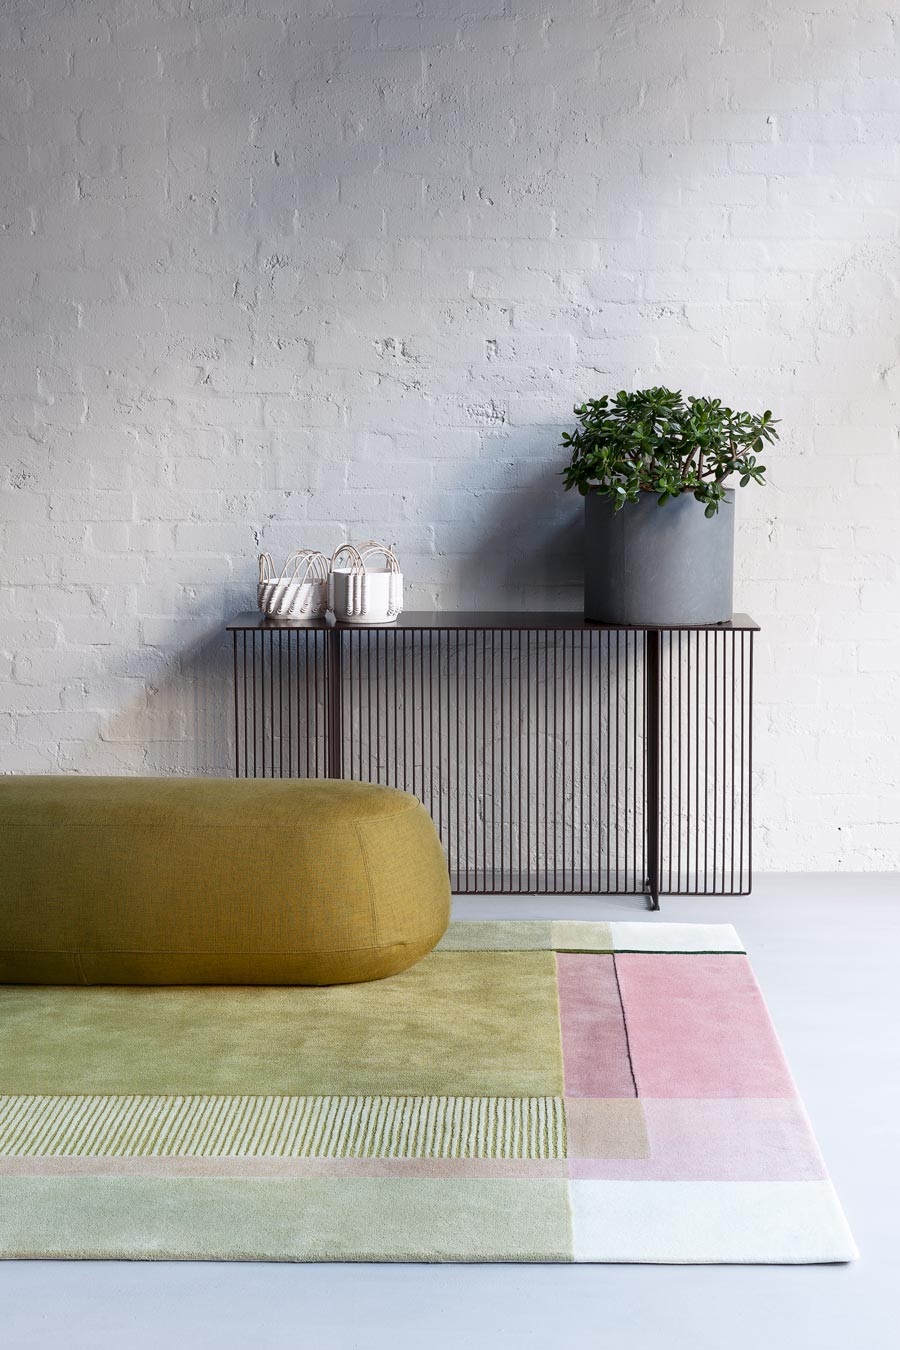 location shot of spring rug by bernabeifreeman green and pink colour block